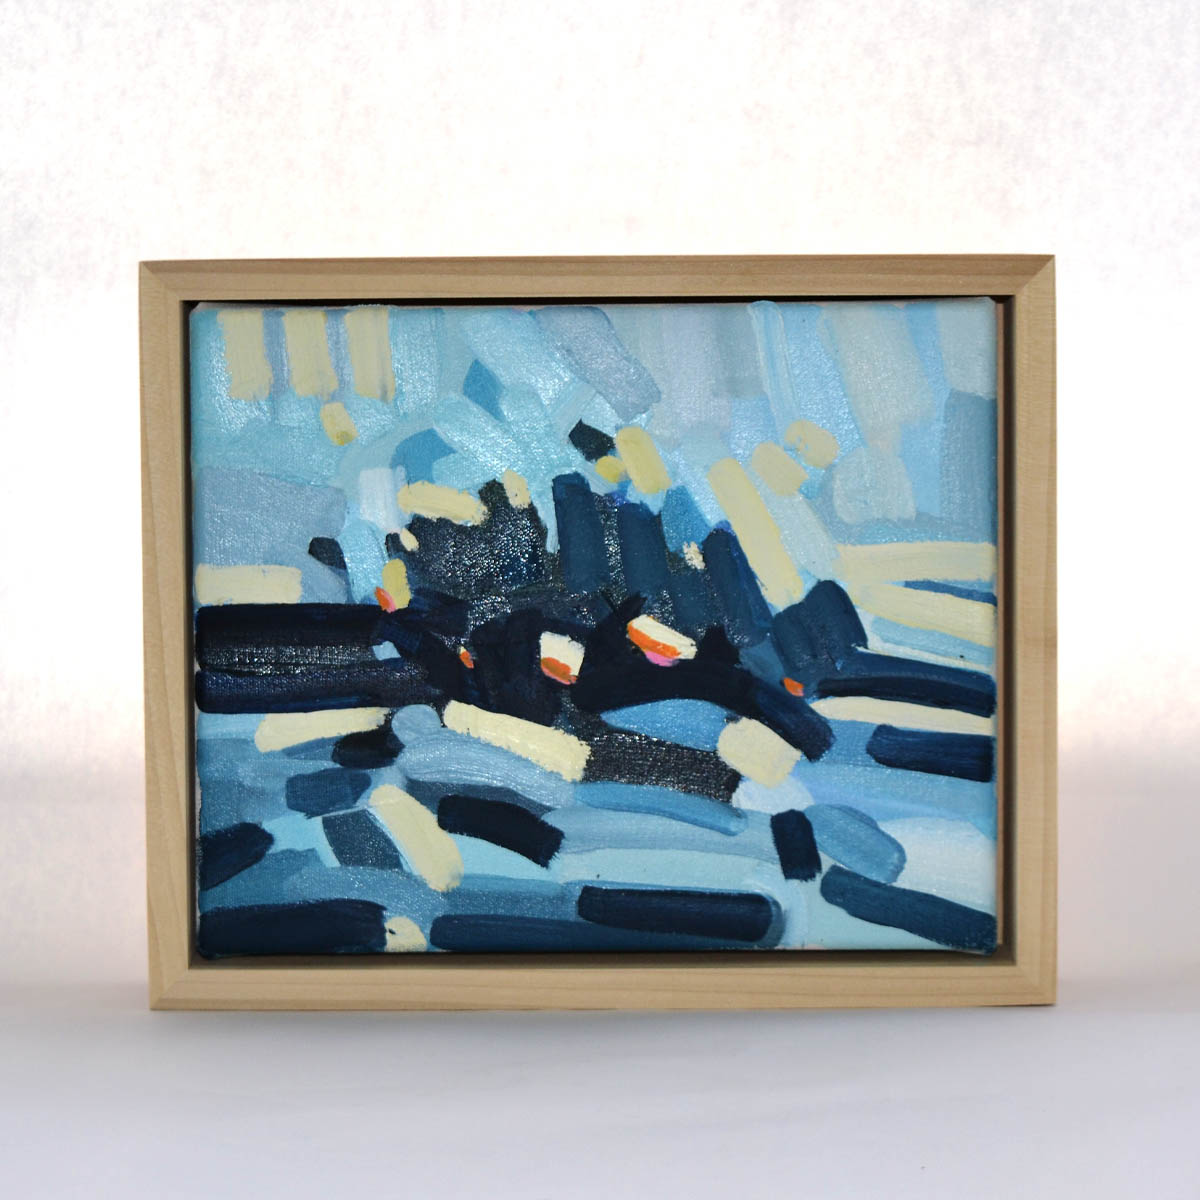 Mallie Pratt Painting - Artist Mallie Loring Pratt has generously provided this framed oil on canvas painting. Vibrant and bold, this abstract work would be a lovely addition to anyone's collection.Value: $350.00